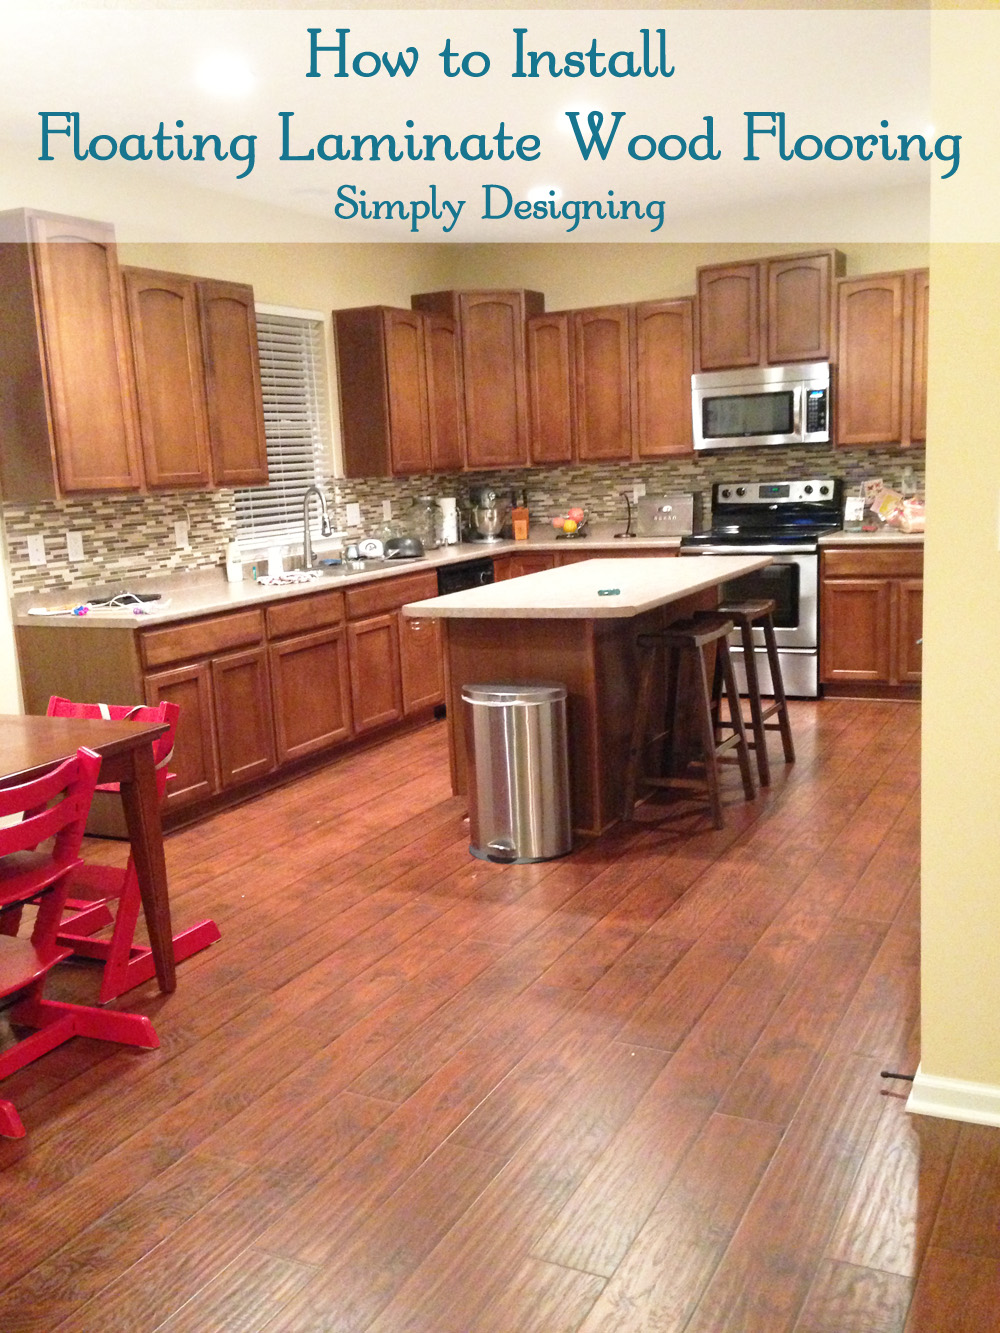 Laminate flooring how to install laminate flooring kitchen for Installing laminate wood flooring